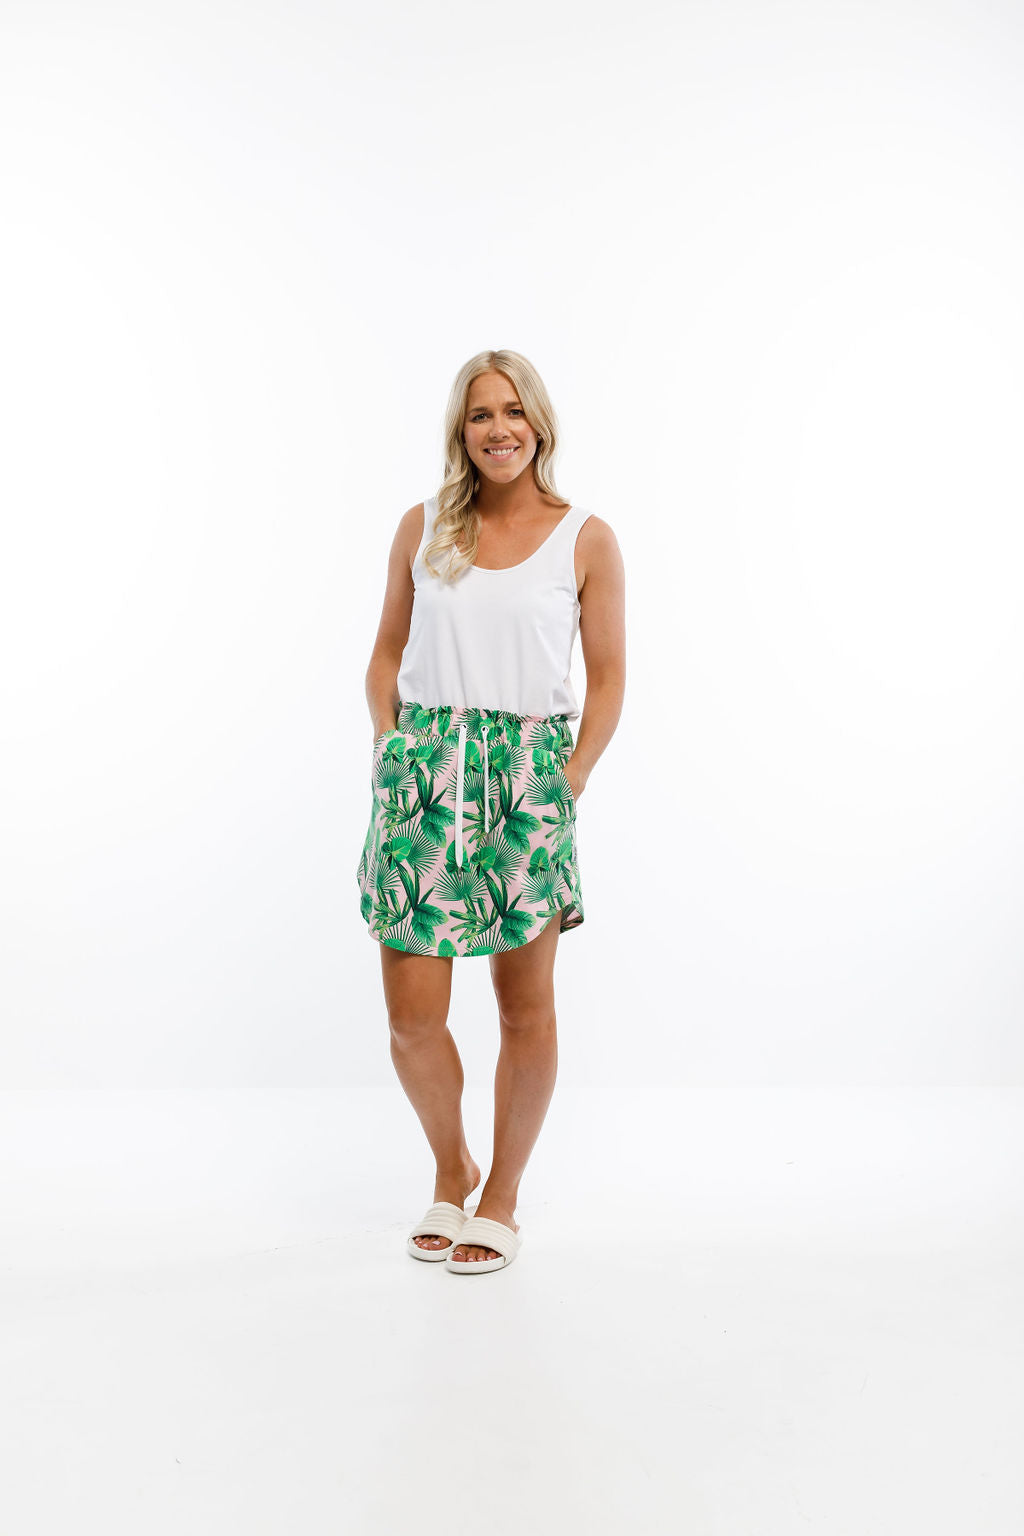 MINI SKIRT - Tropical Palm